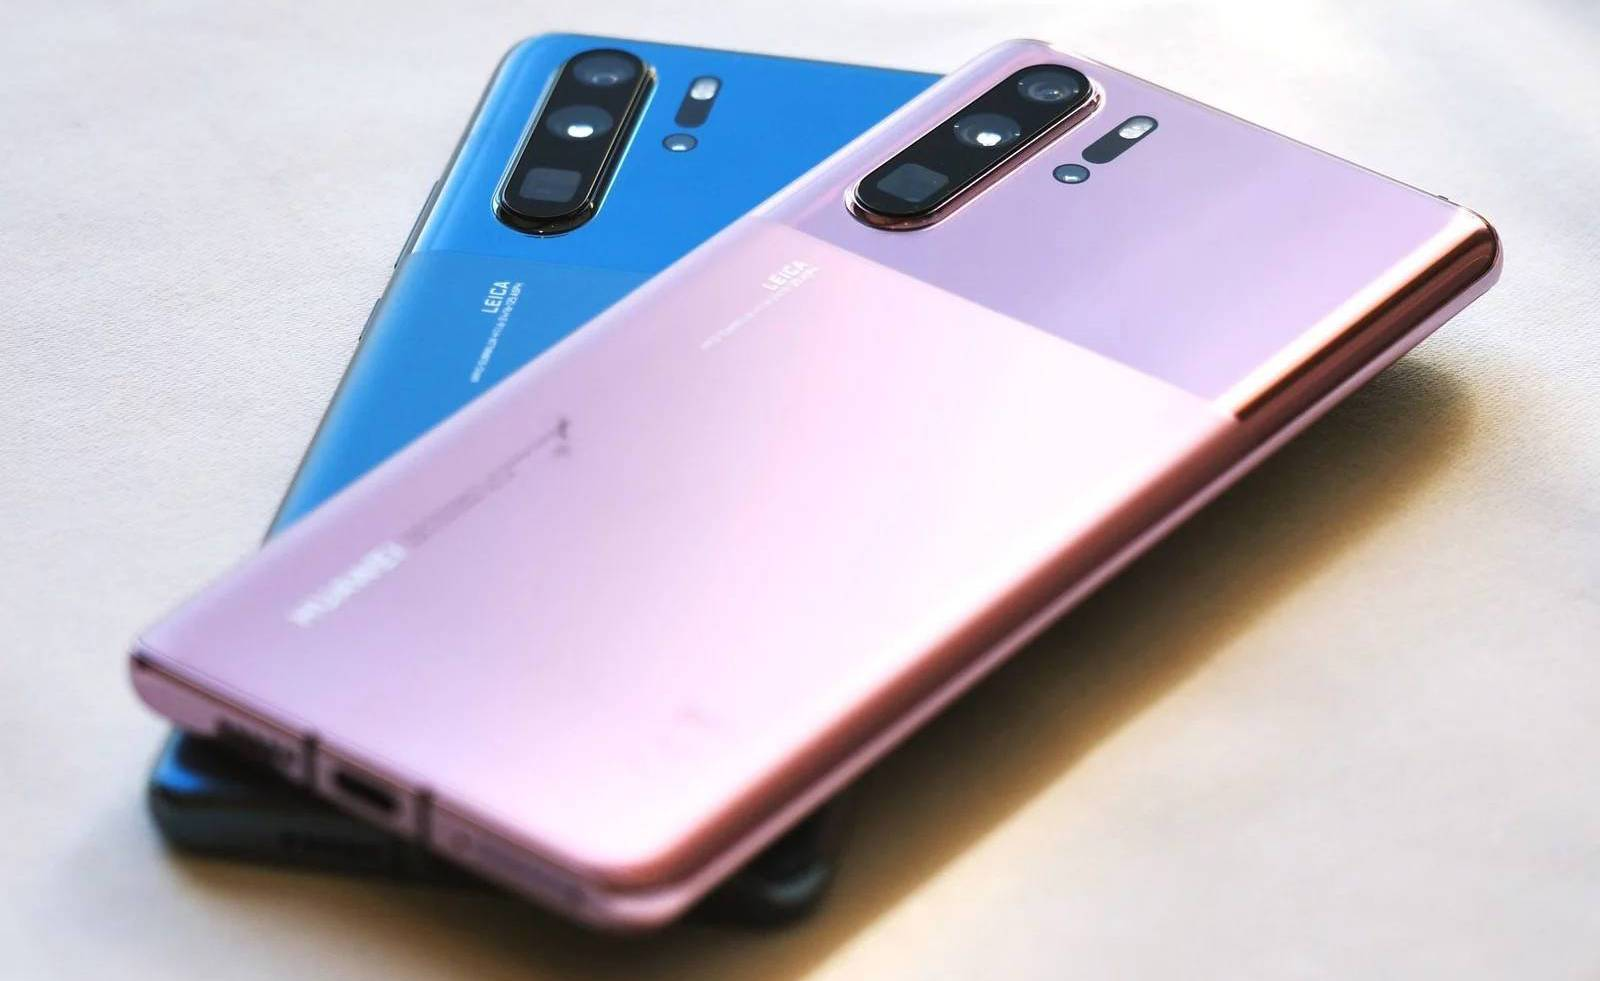 Huawei P30 PRO. OFICIAL, CAND se LANSEAZA Android 10 pe Telefoane